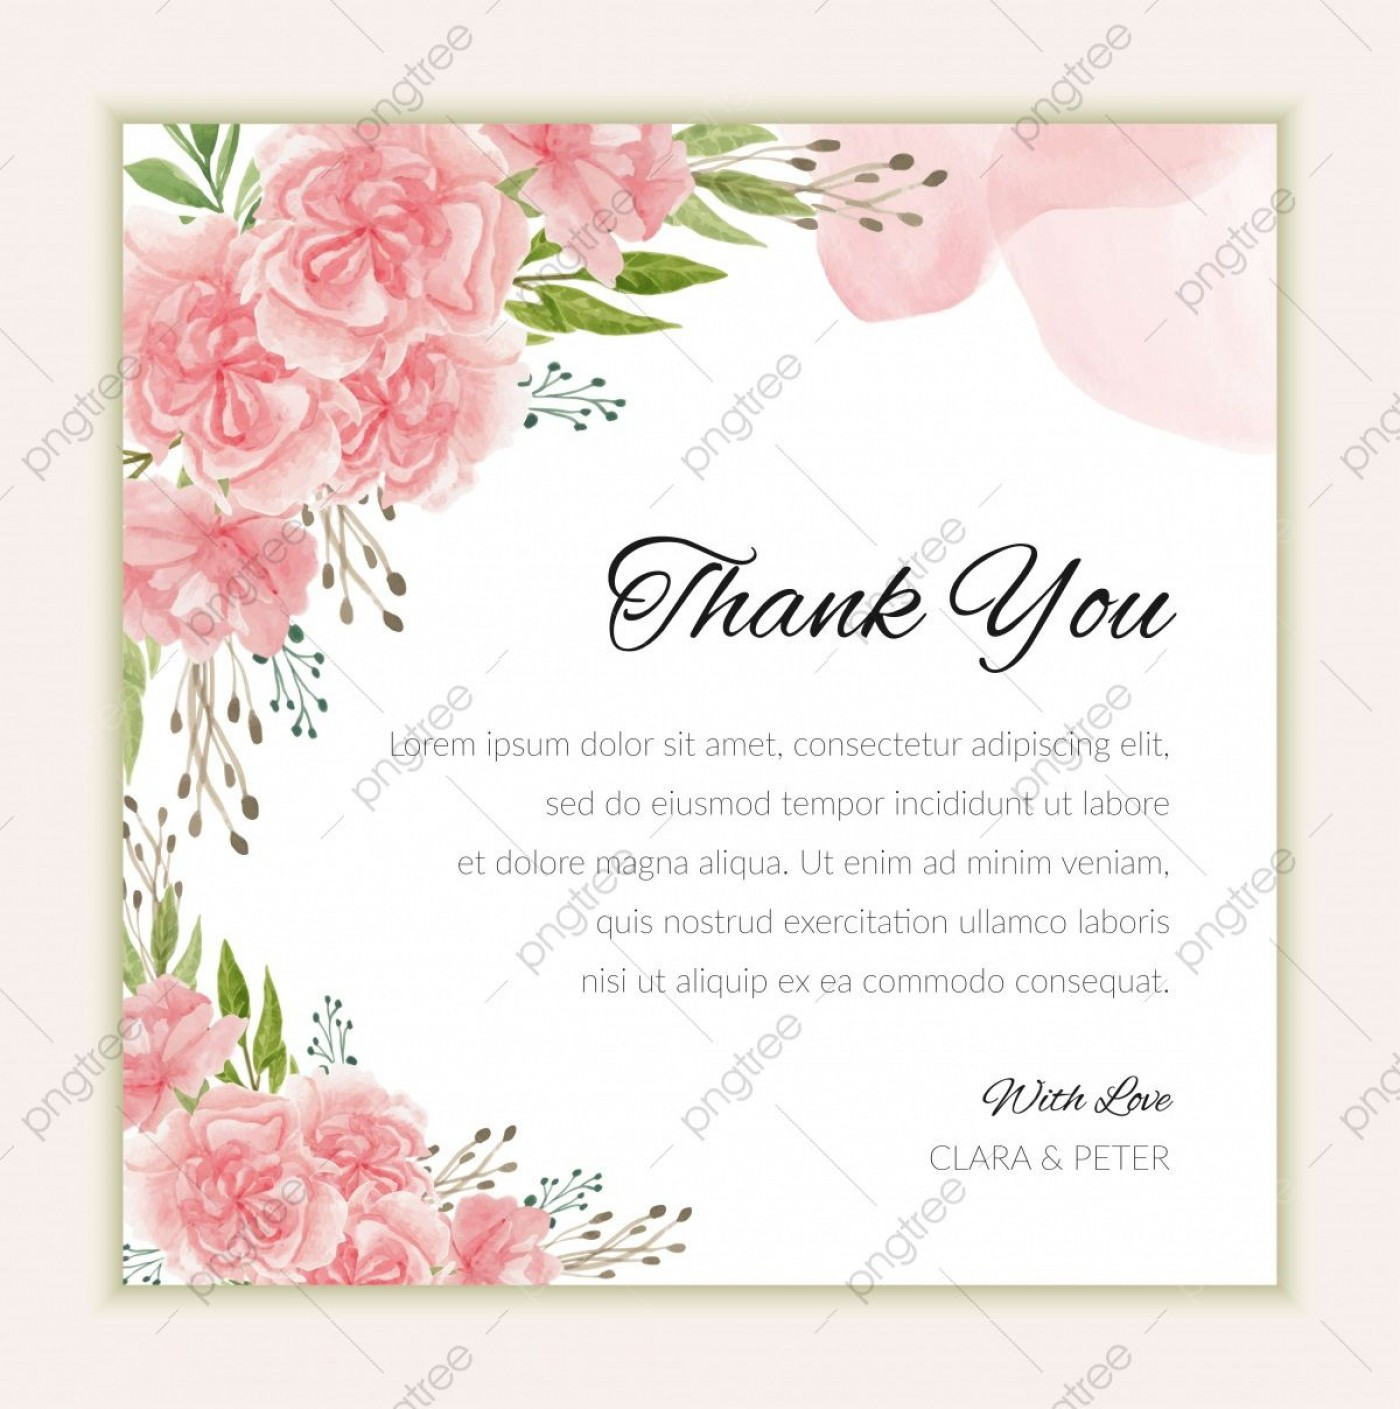 005 Exceptional Thank You Card Template Idea  Wedding Busines Word Free1400